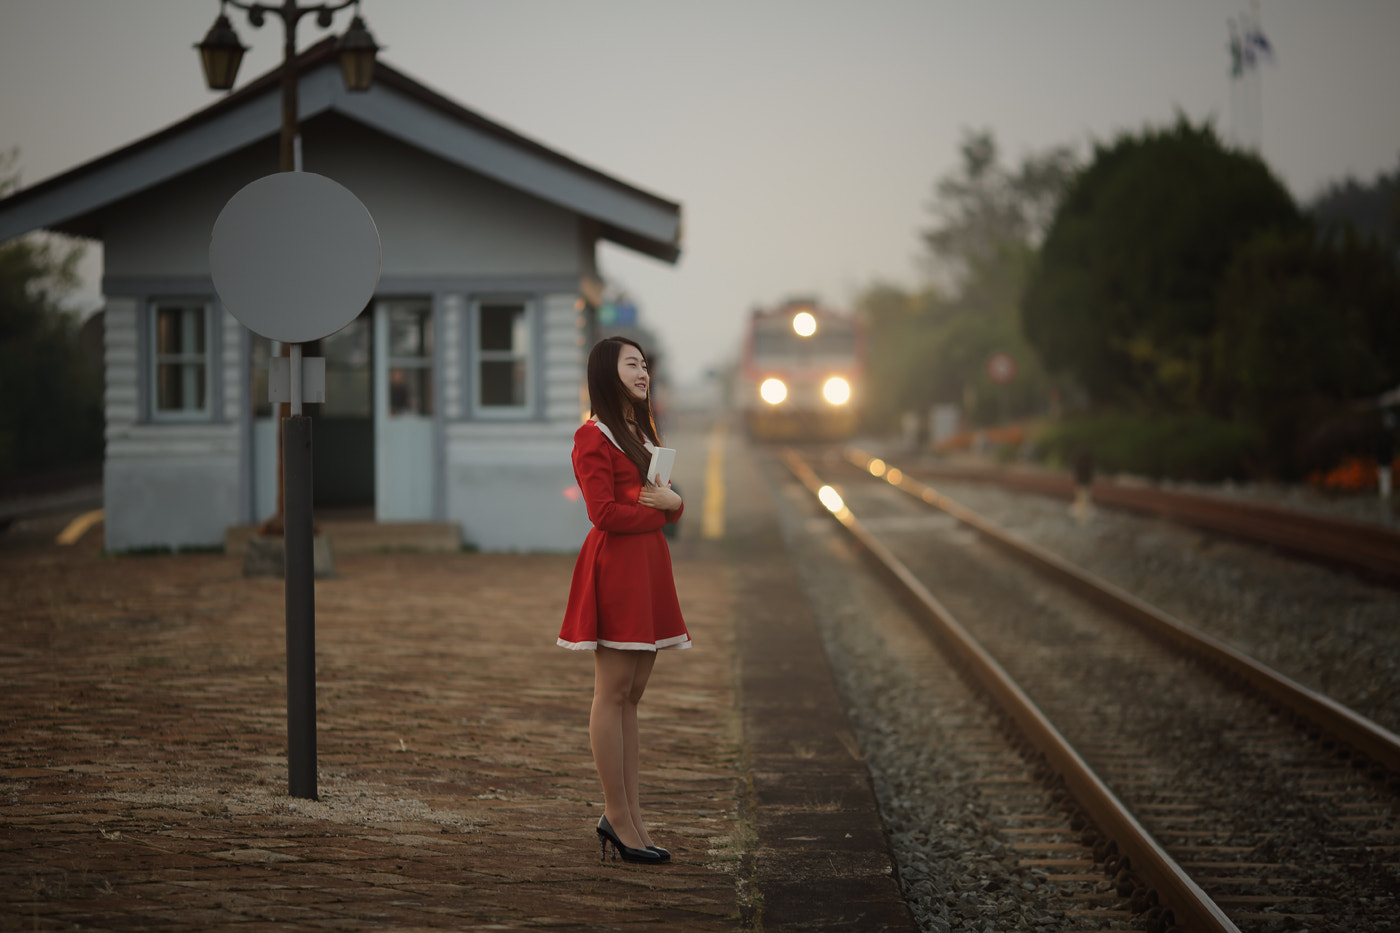 Photograph I want to celebrate my life #3 by Sin Dong Kim on 500px